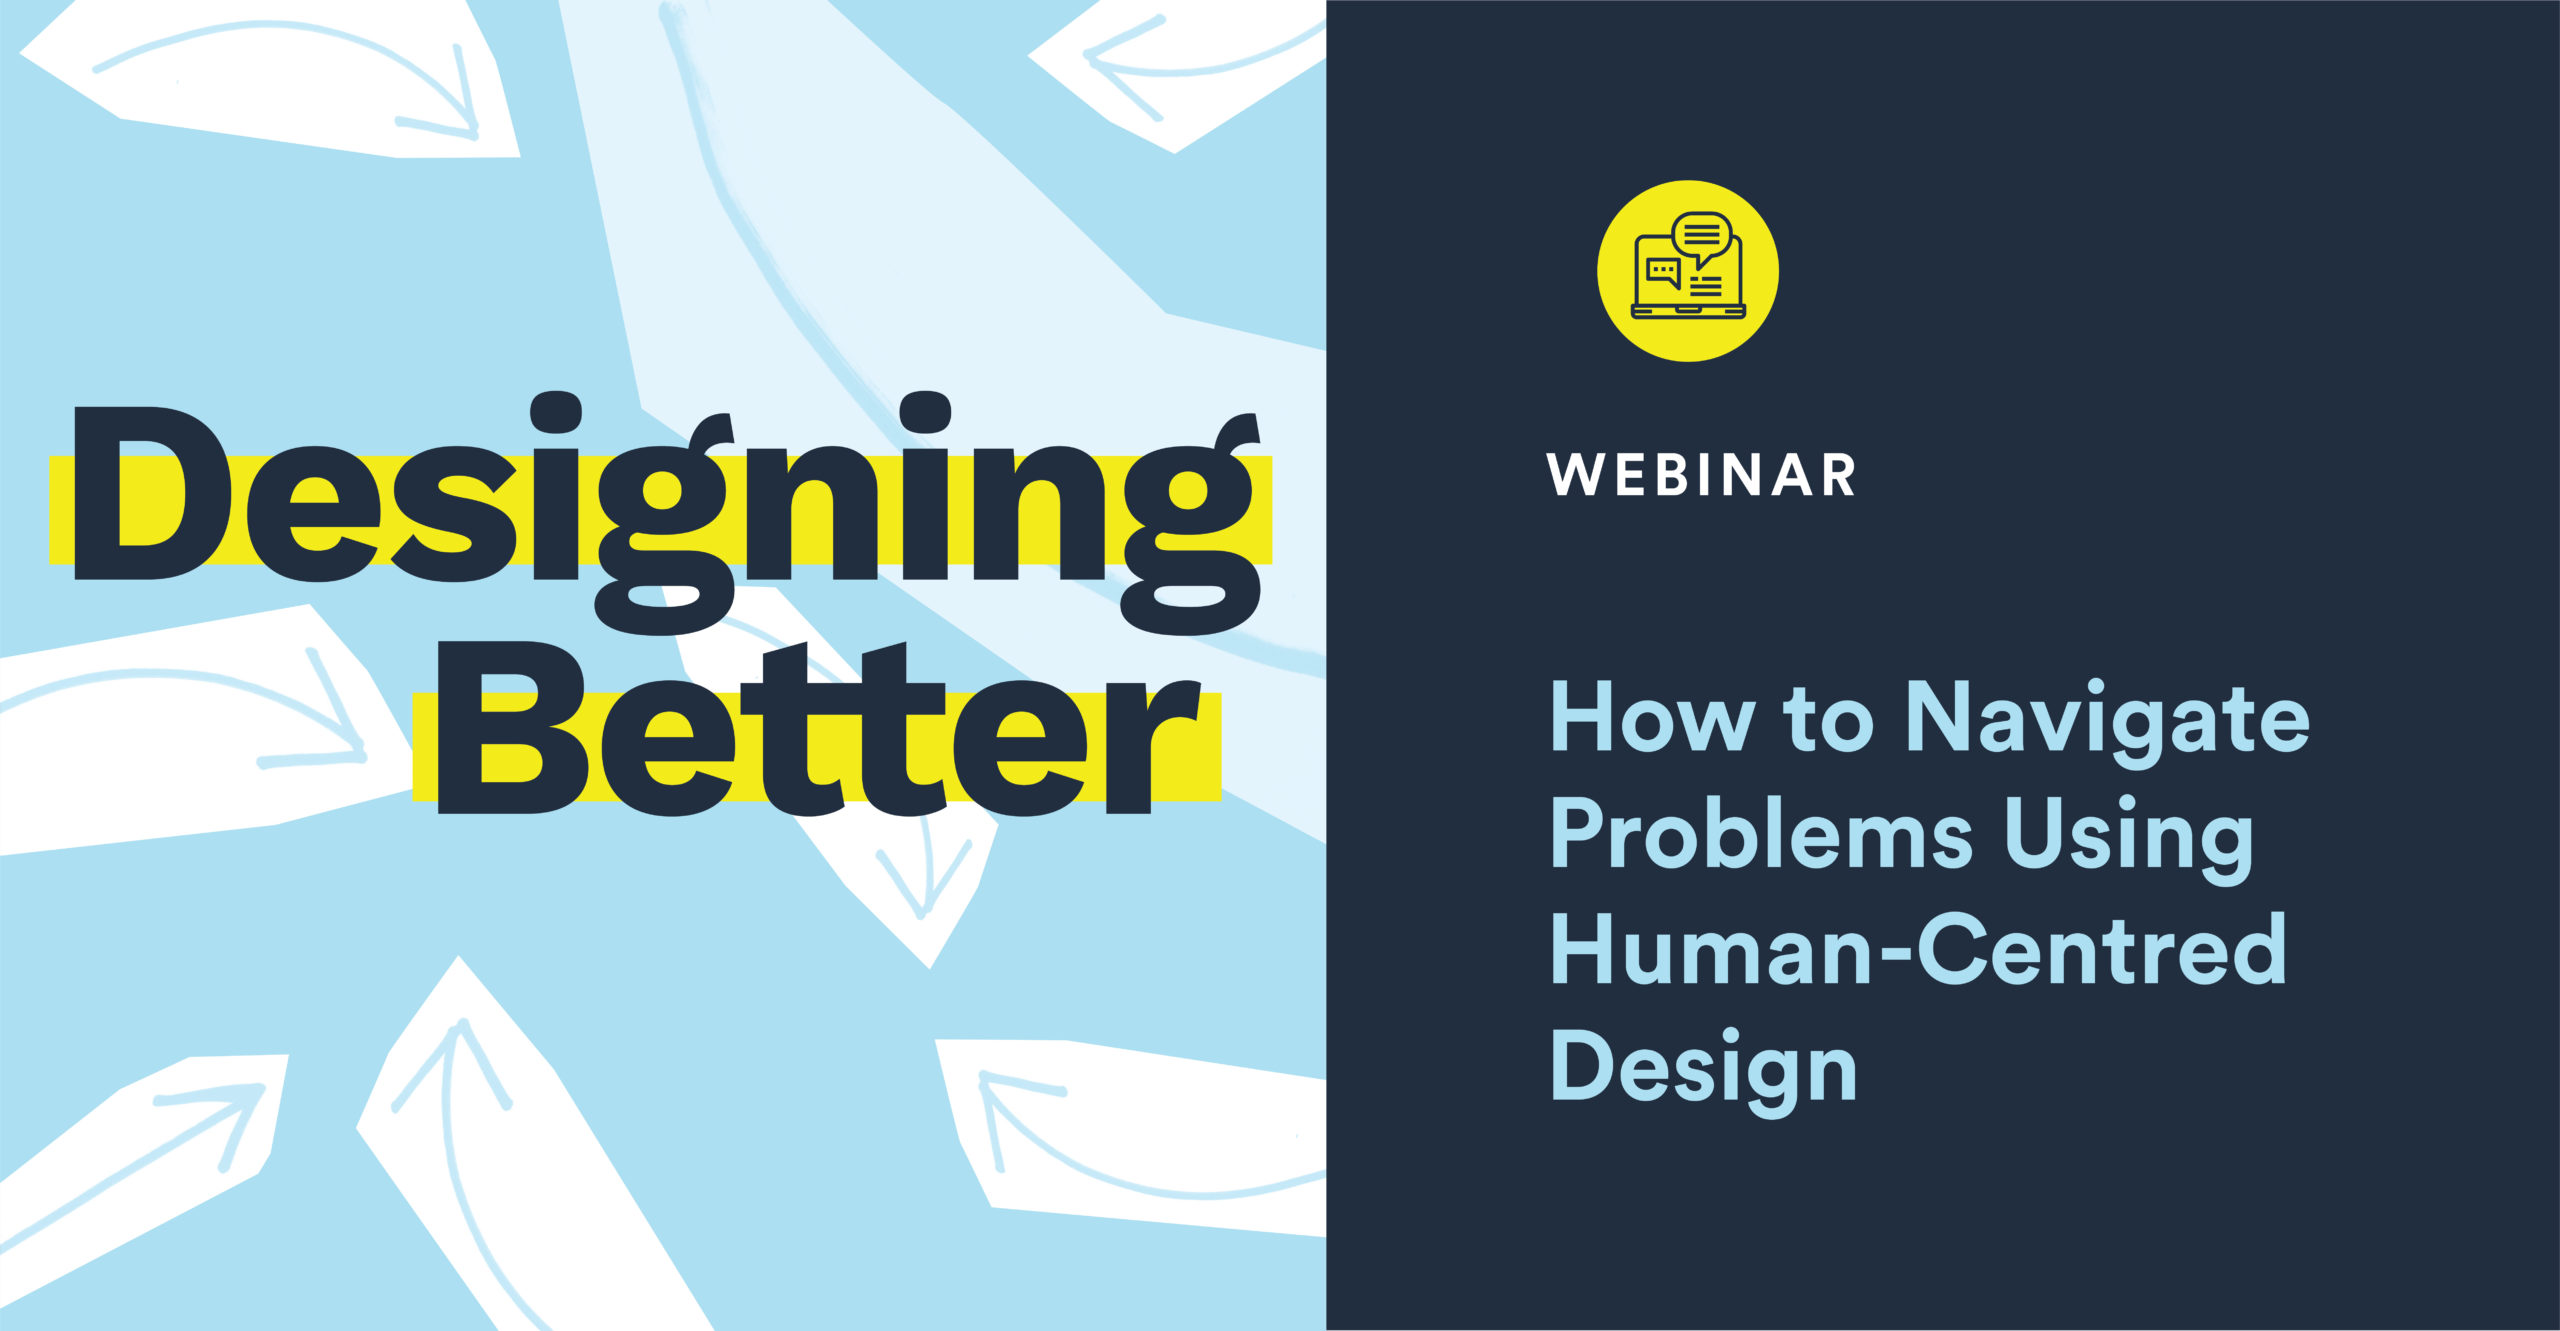 Designing Better: How to Navigate Problems Using Human-Centred Design